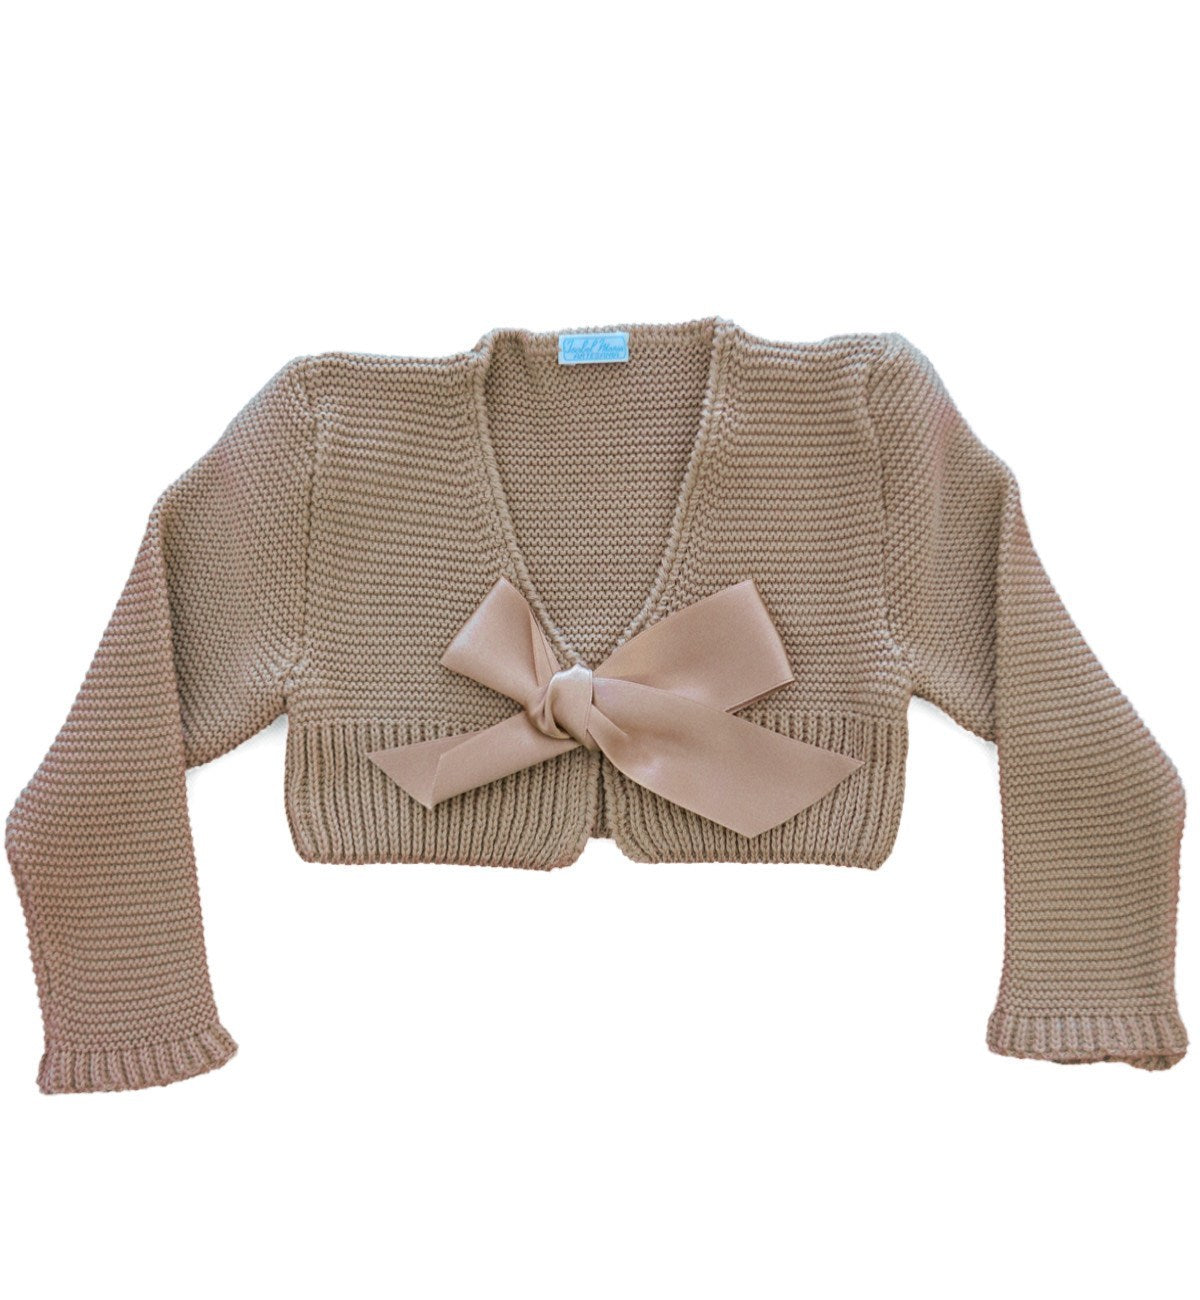 Spanish baby clothes | baby Cardigan & Coat | Camel satin ribbon bolero |babymaC